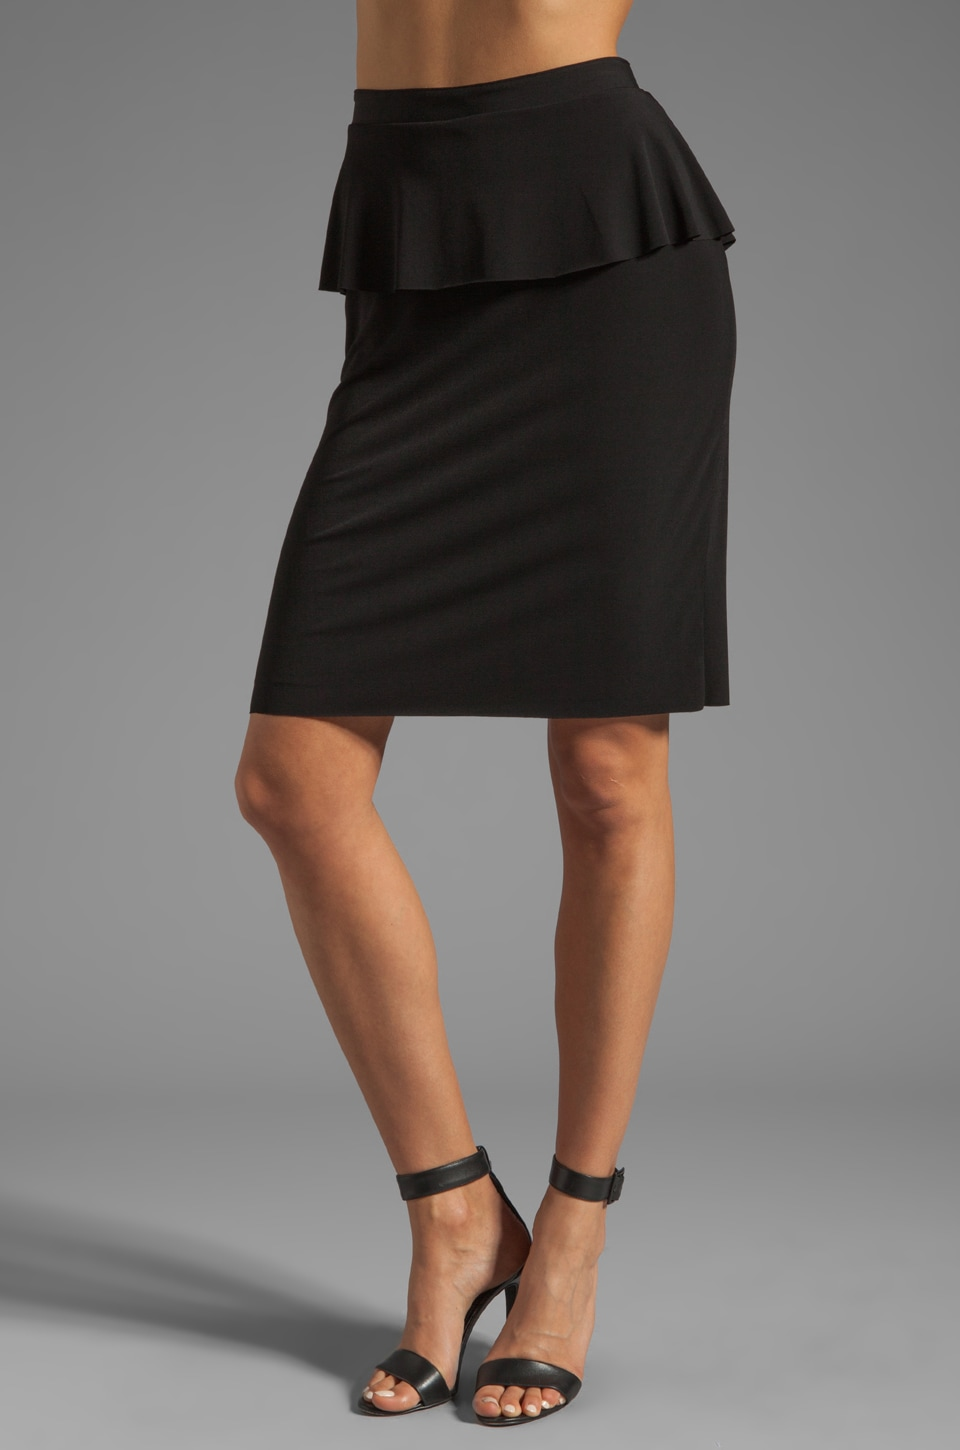 Graham & Spencer Stretch Jersey Skirt in Black